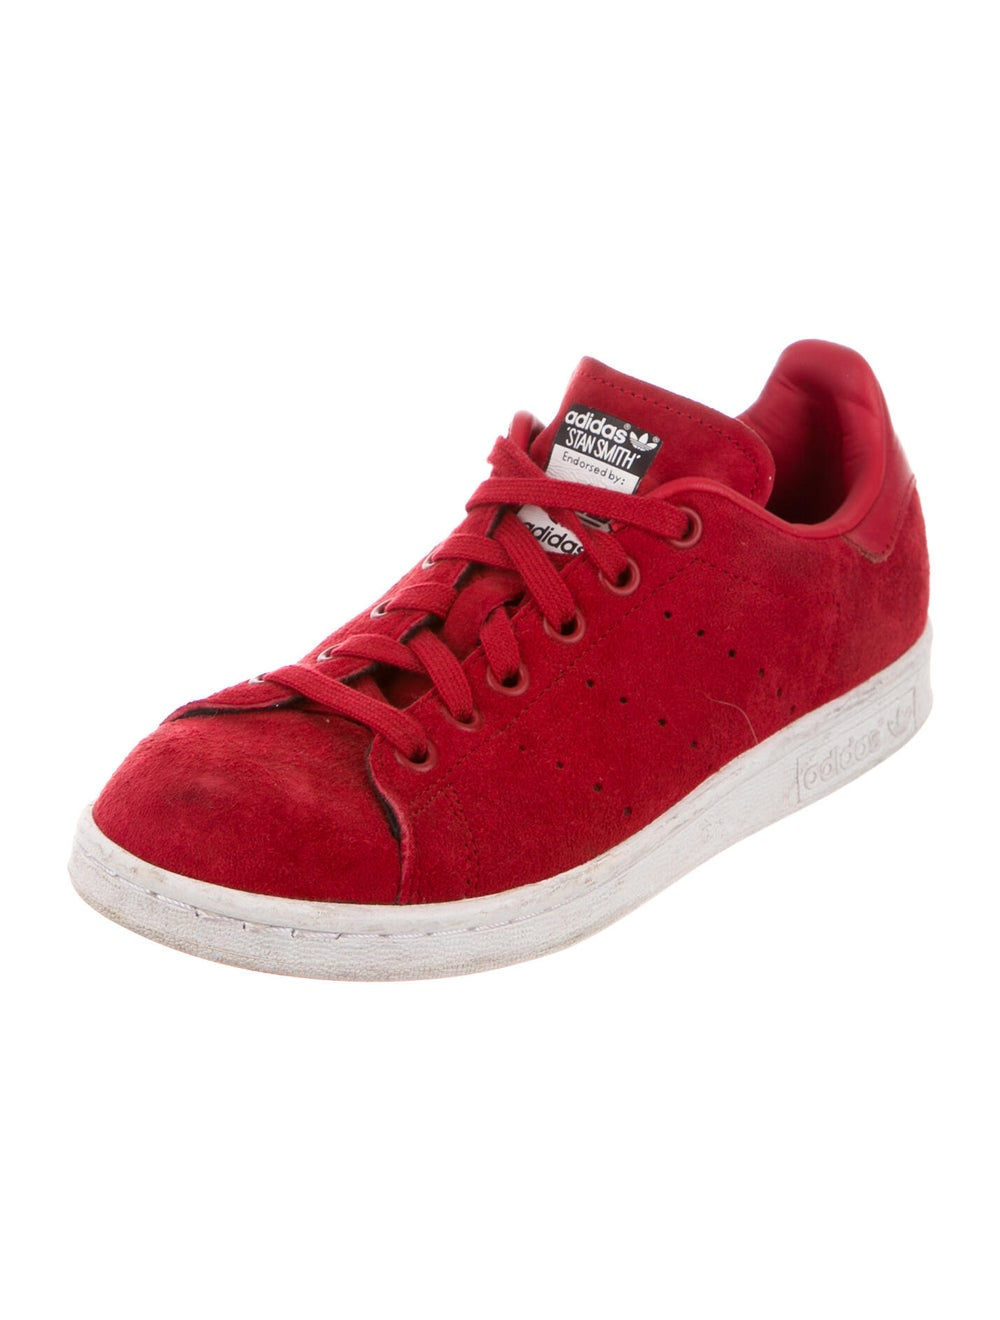 Adidas Suede Sneakers Red - image 2